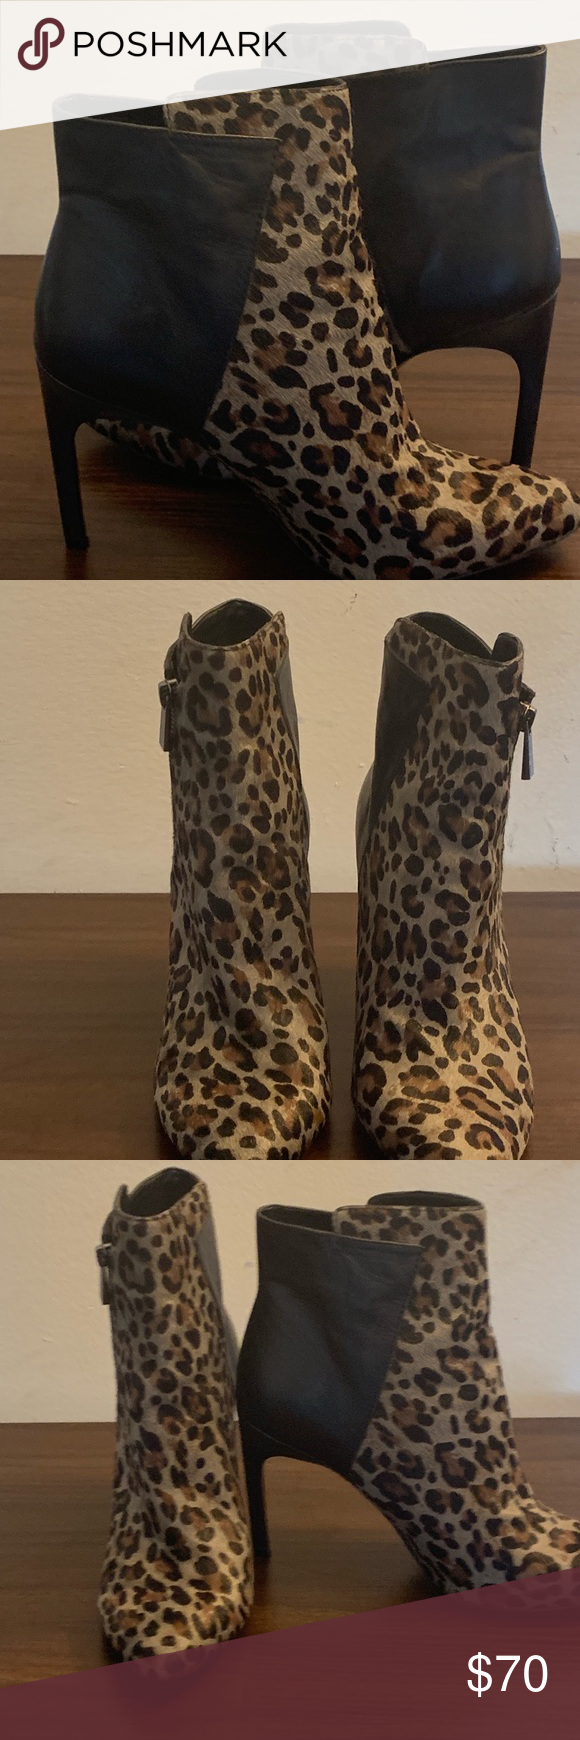 Jessica Simpson Leather & calf hair Bootie Chic ,Stylish 4' Black Leather and  leopard calf hair Shoe Bootie In excellent condition. Worn once around house and patio. Jessica Simpson Shoes Ankle Boots & Booties #jessicasimpsonhair Jessica Simpson Leather & calf hair Bootie Chic ,Stylish 4' Black Leather and  leopard calf hair Shoe Bootie In excellent condition. Worn once around house and patio. Jessica Simpson Shoes Ankle Boots & Booties #jessicasimpsonhair